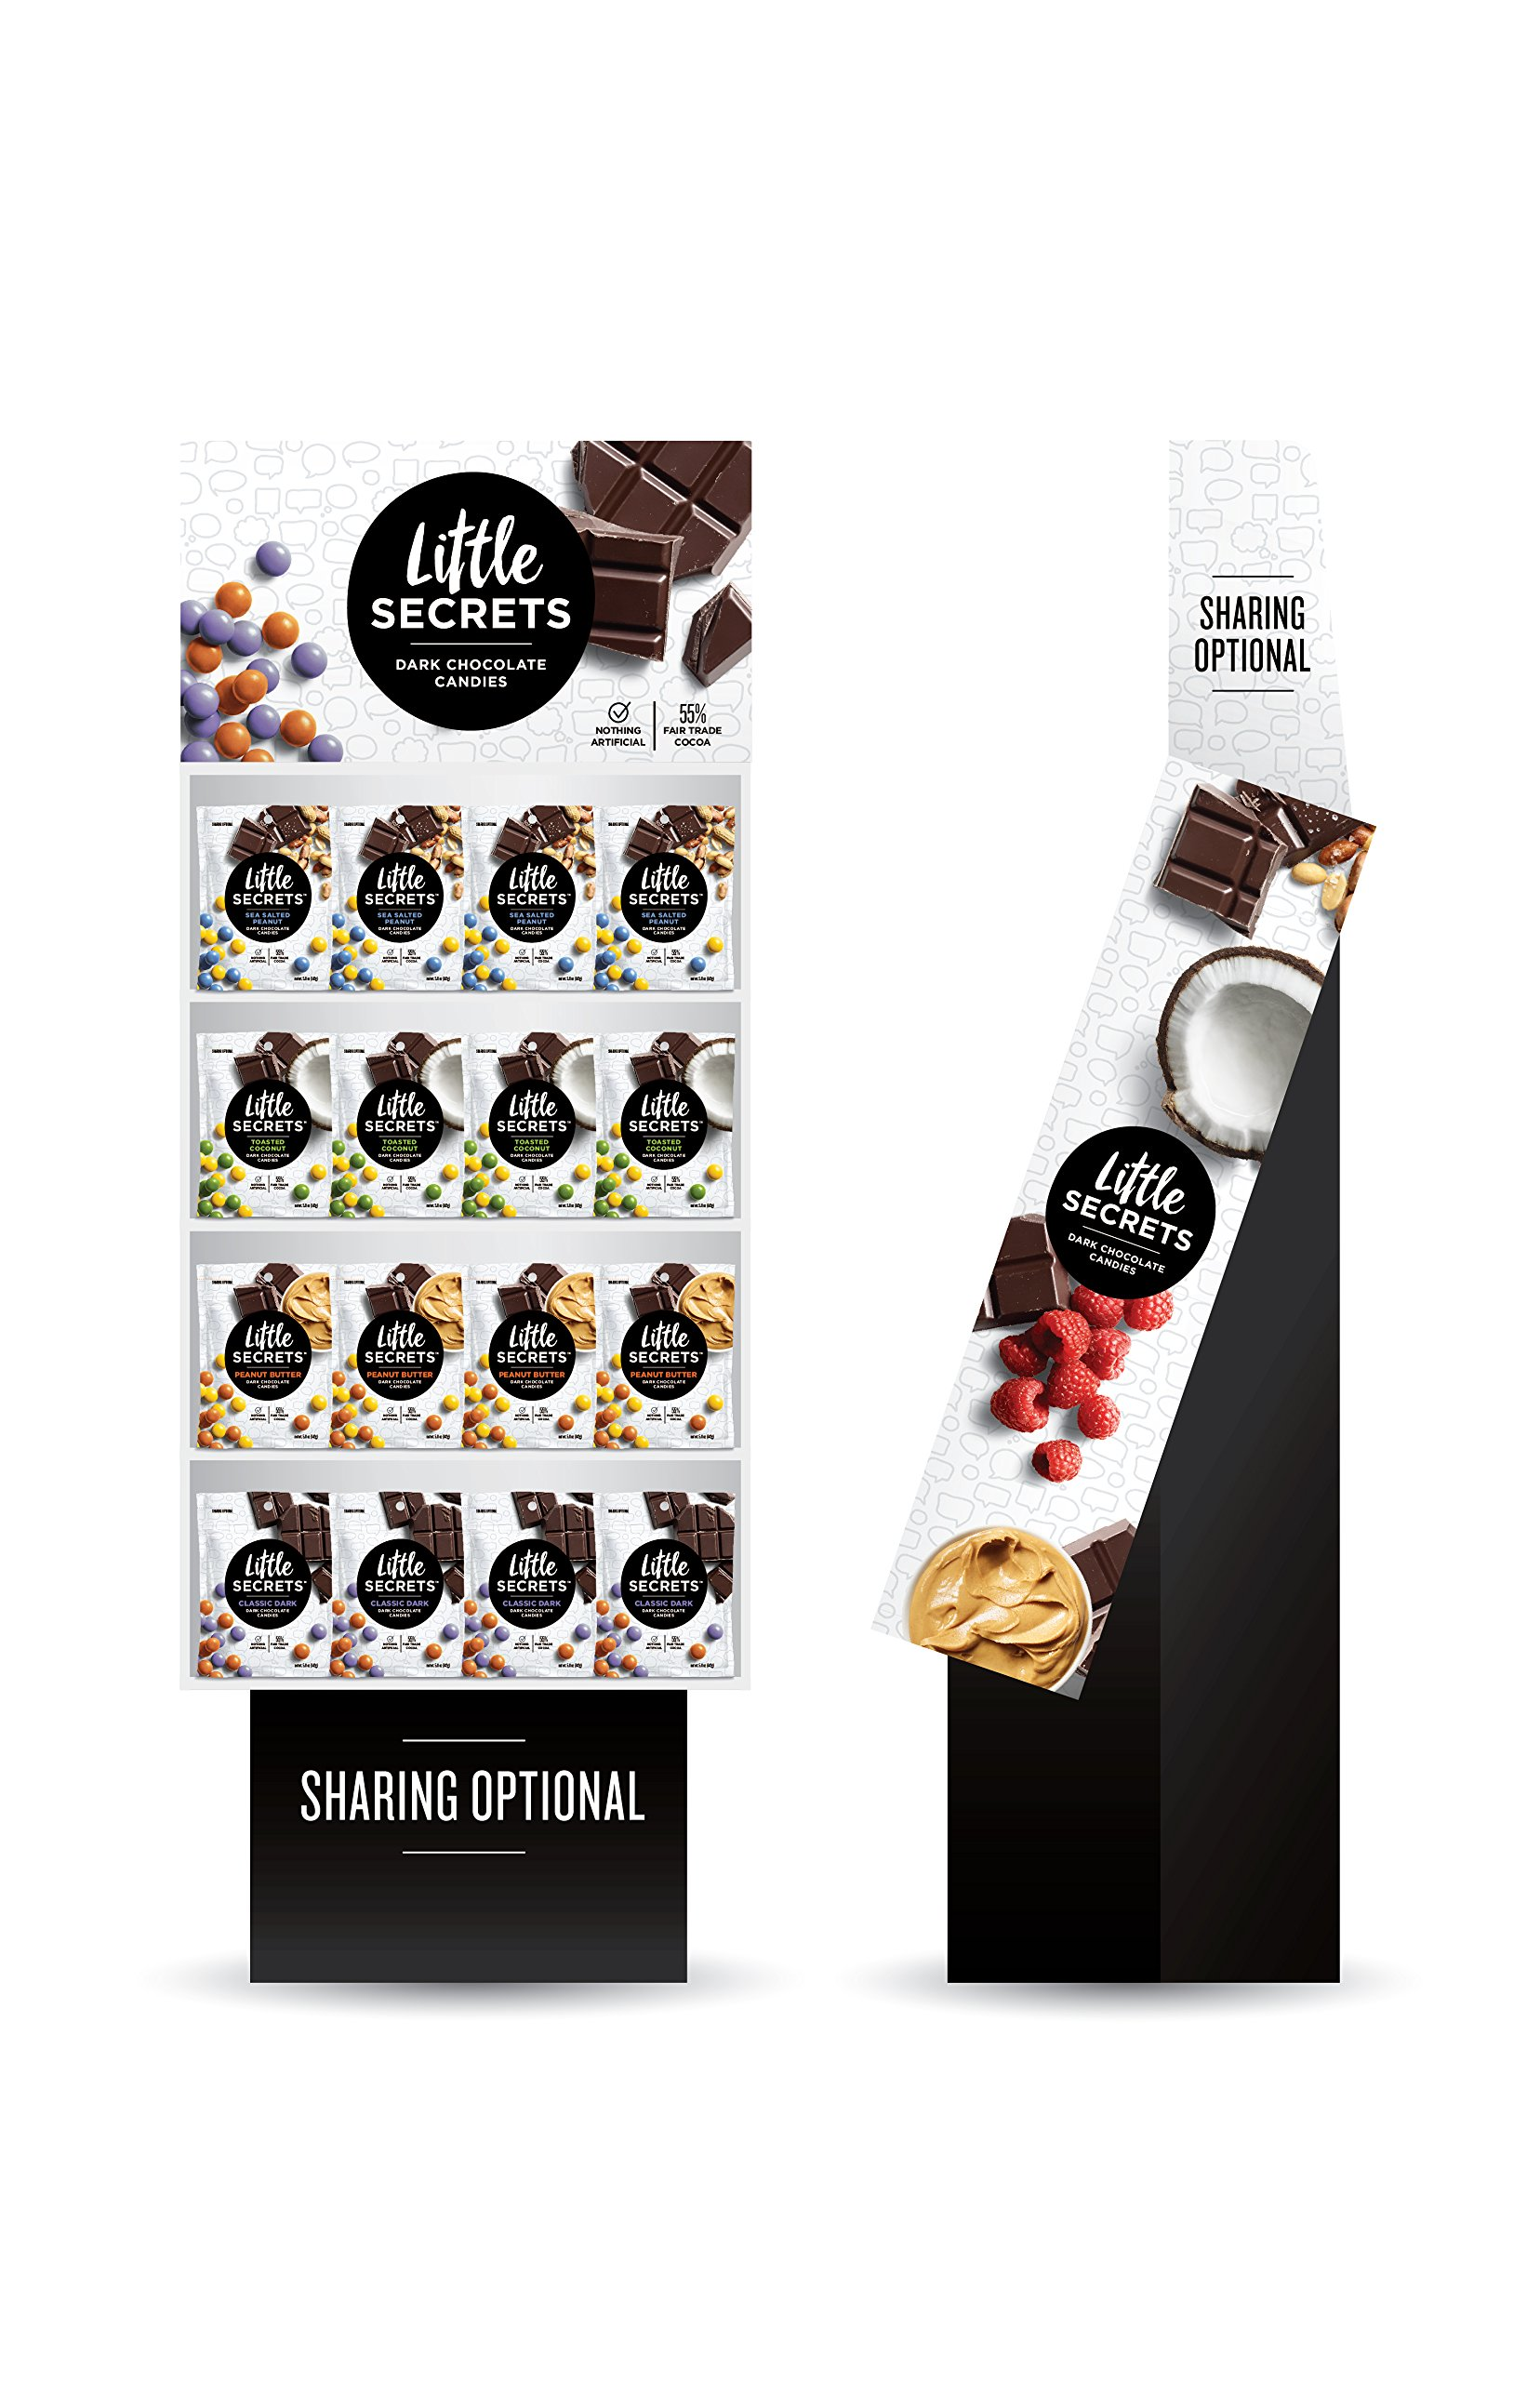 Little Secrets - All Natural Fair Trade Gourmet Chocolate Candy - 4 Flavor Variety Shipper - {60ct, 5oz Bags} The World's Most Delicious Chocolate Candies